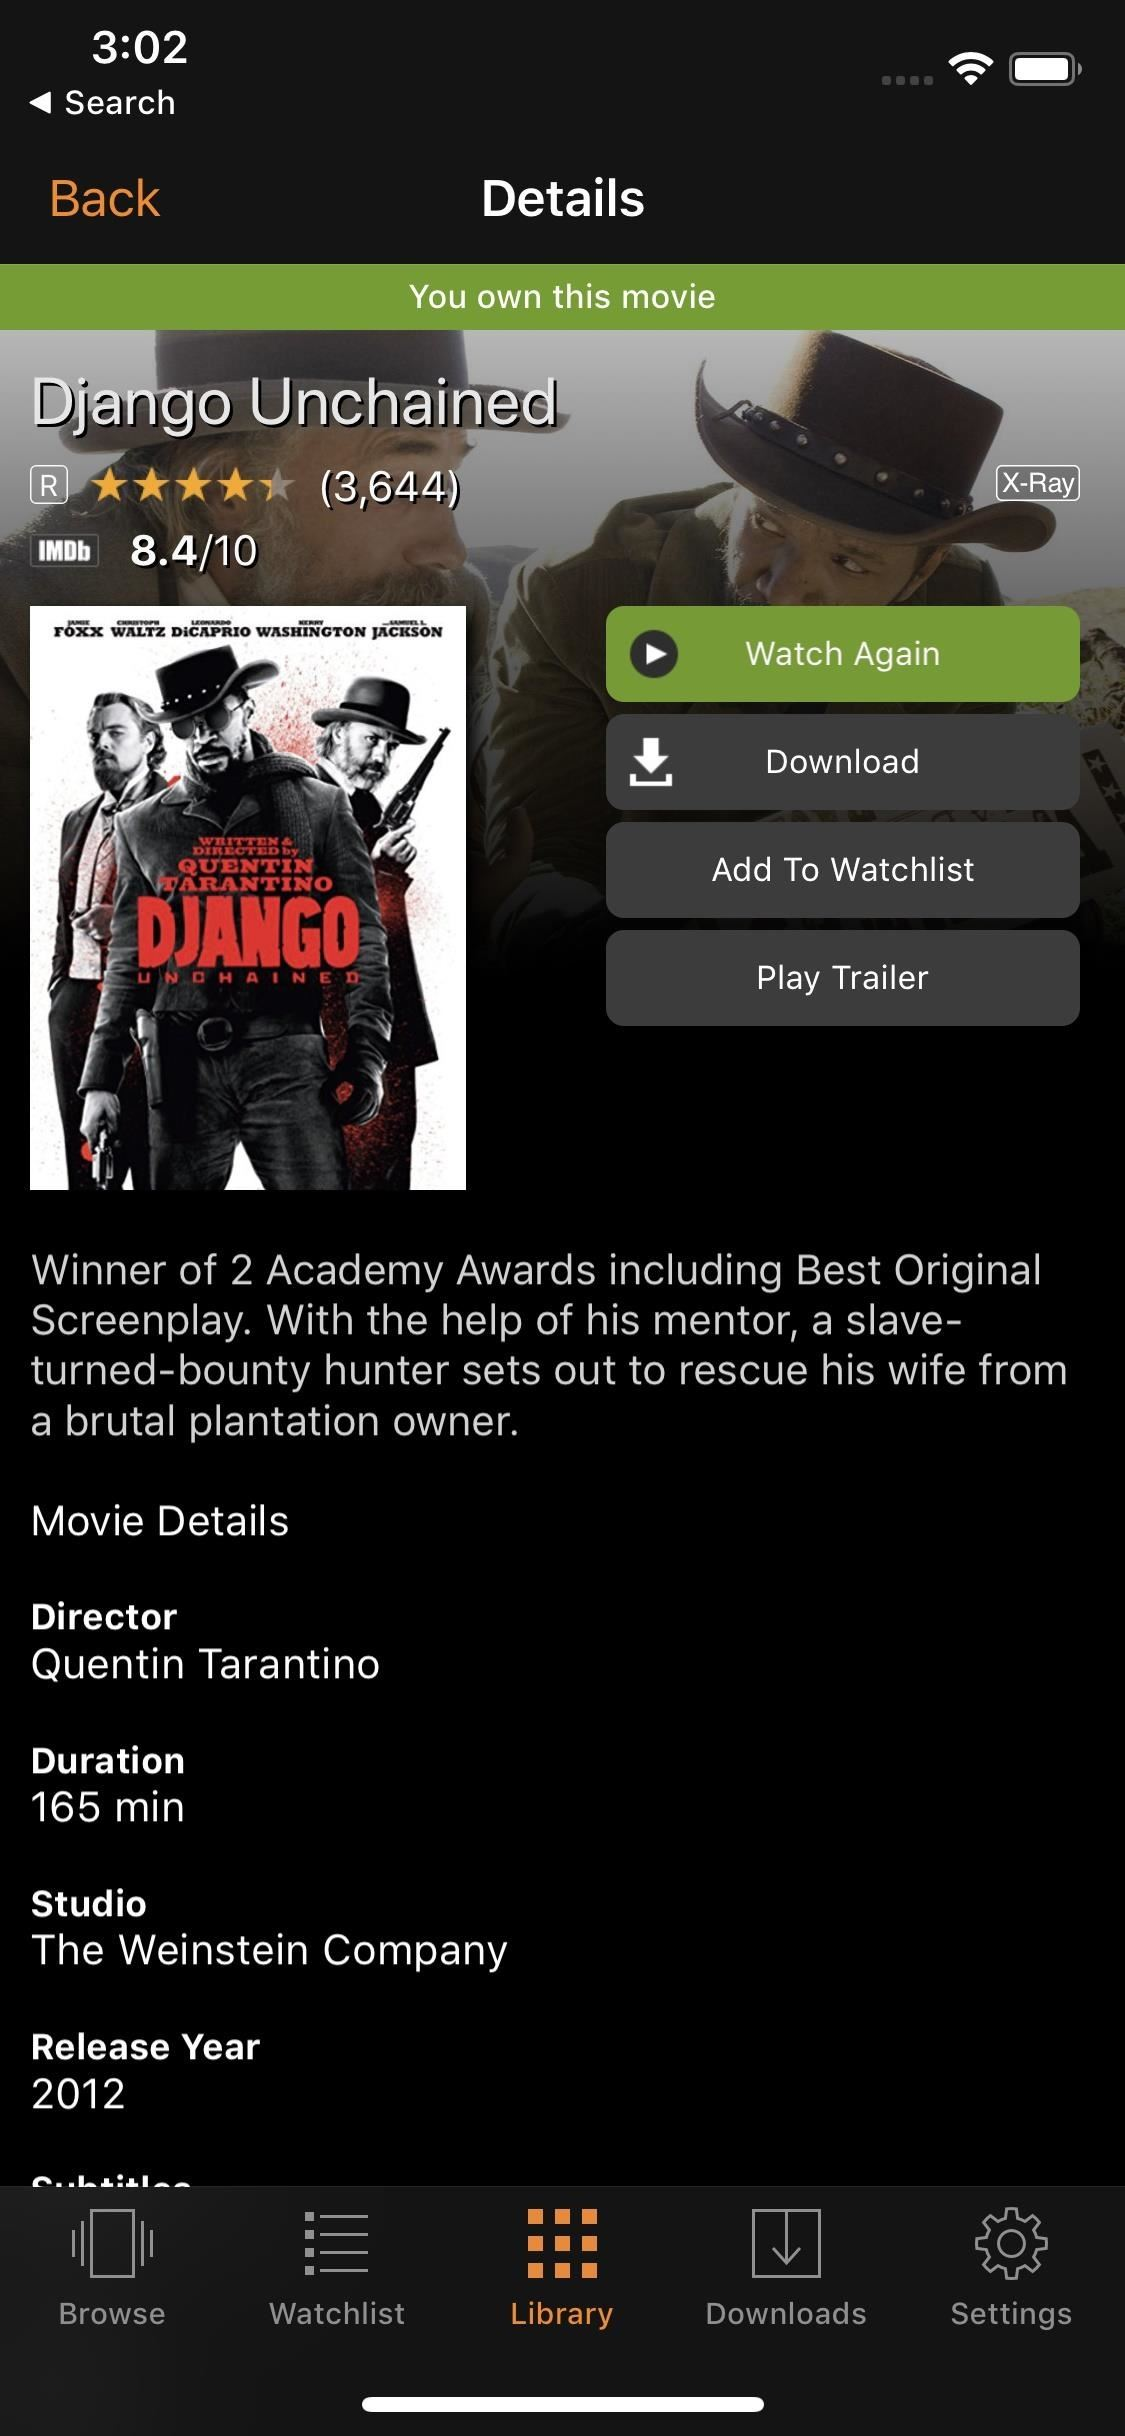 How to Buy Movies & TV Shows from Amazon Prime Video on Your iPhone